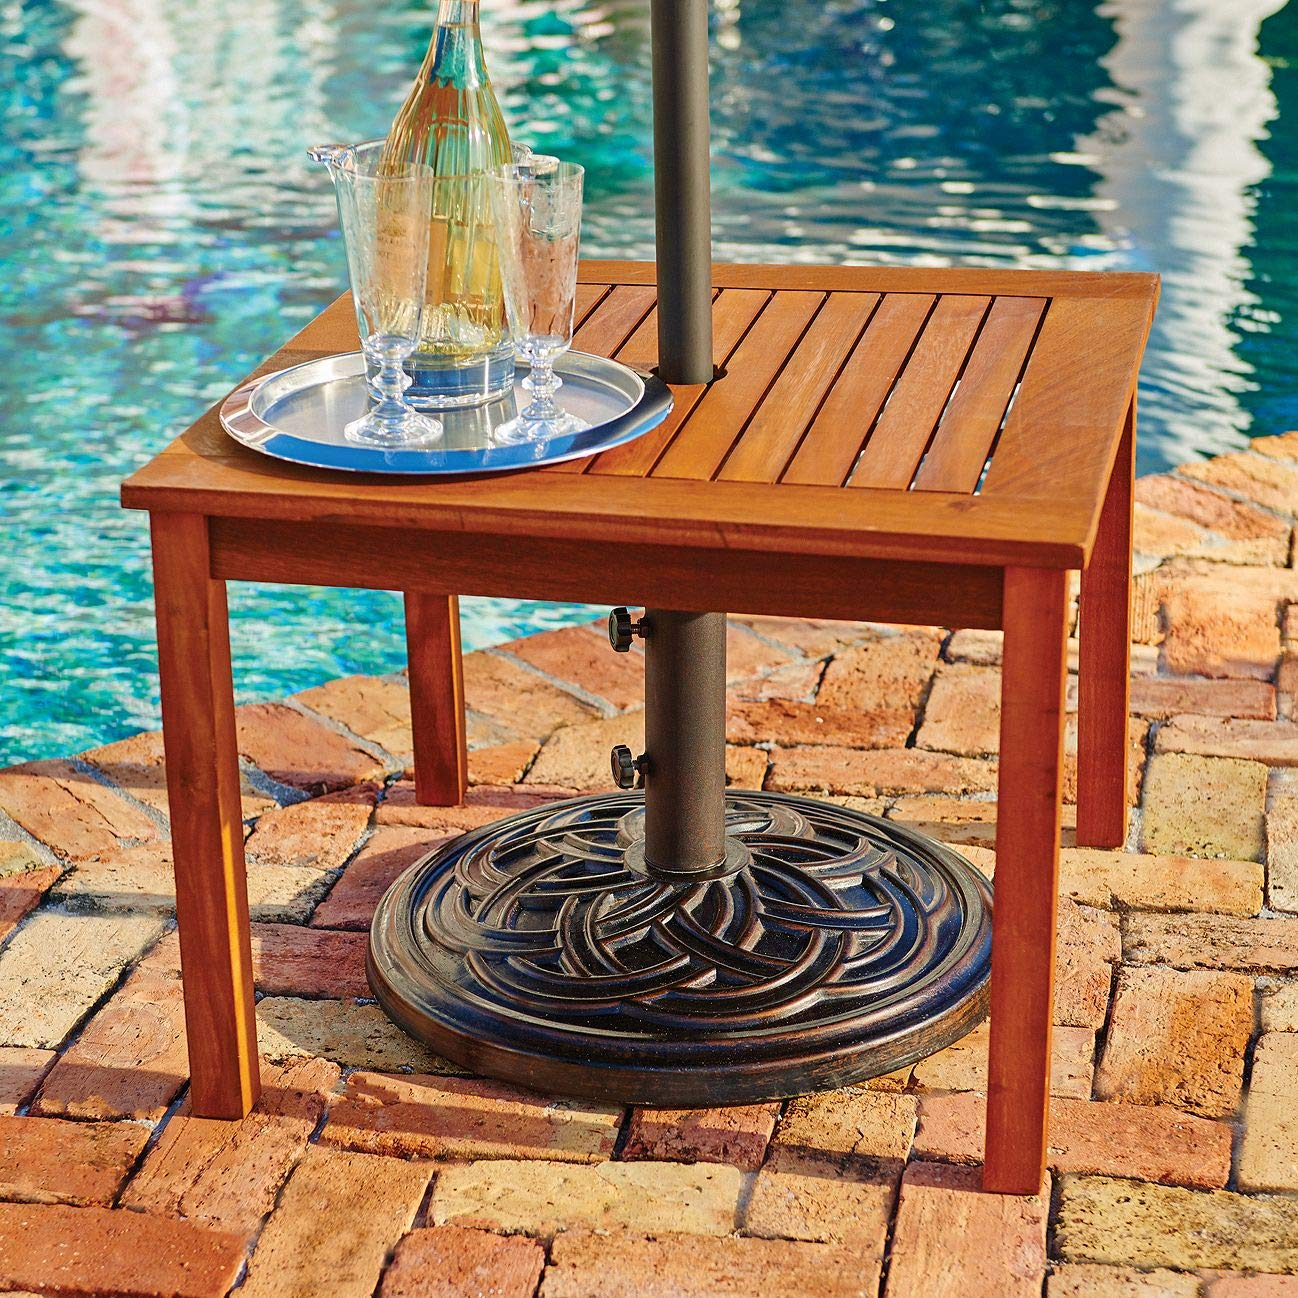 outdoor natural finish eucalyptus wood umbrella side wijhl table end patio pool furniture garden industrial metal bedside antique styles storage for small spaces dorm accessories